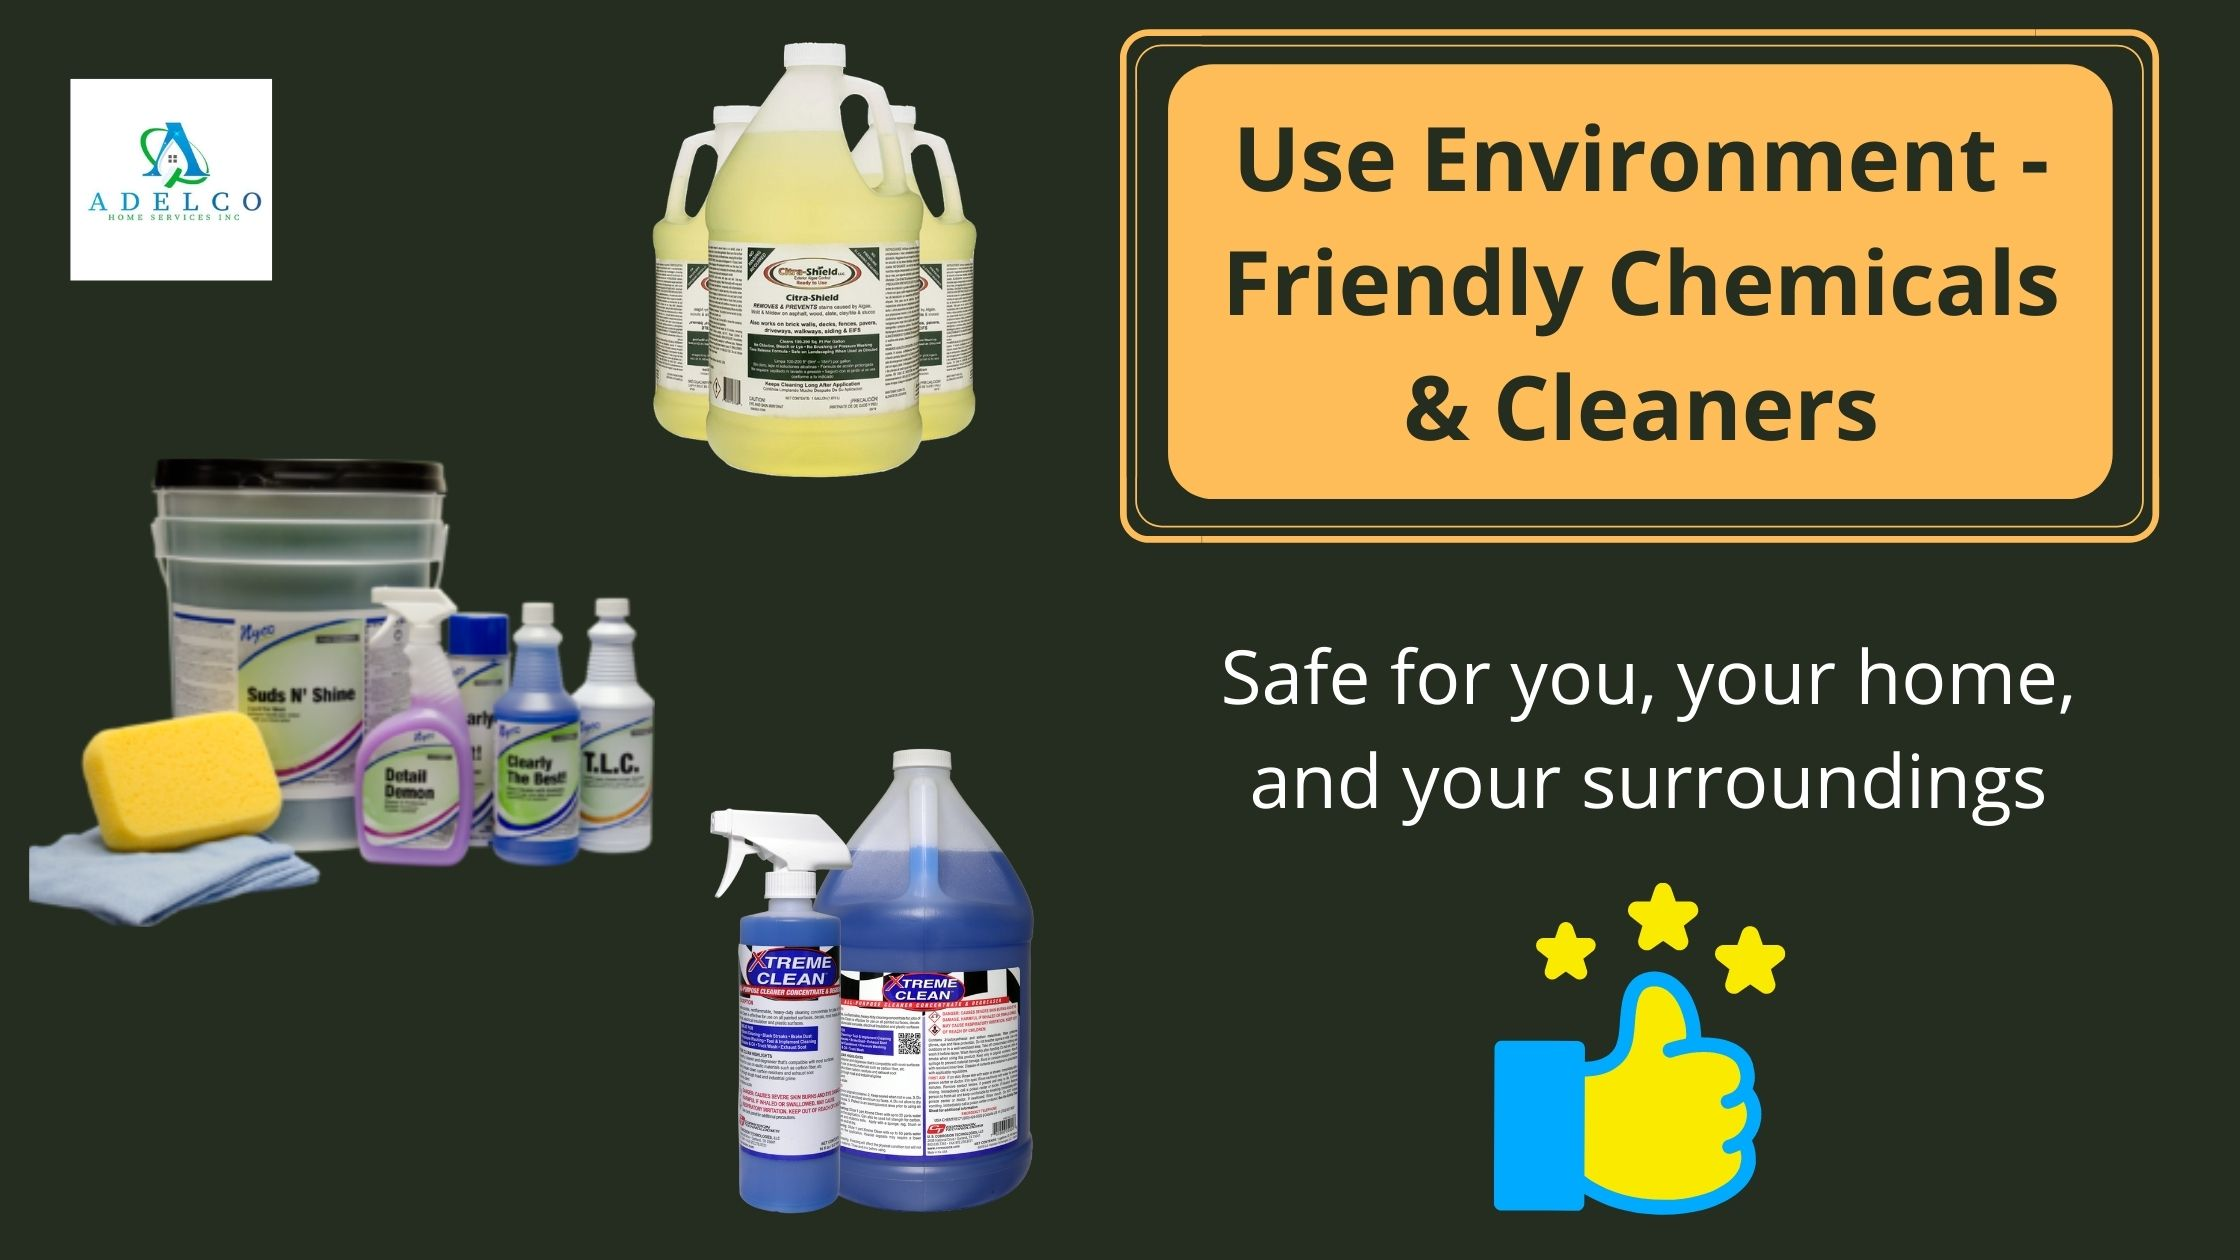 Use Environment - Friendly Chemicals & Cleaners